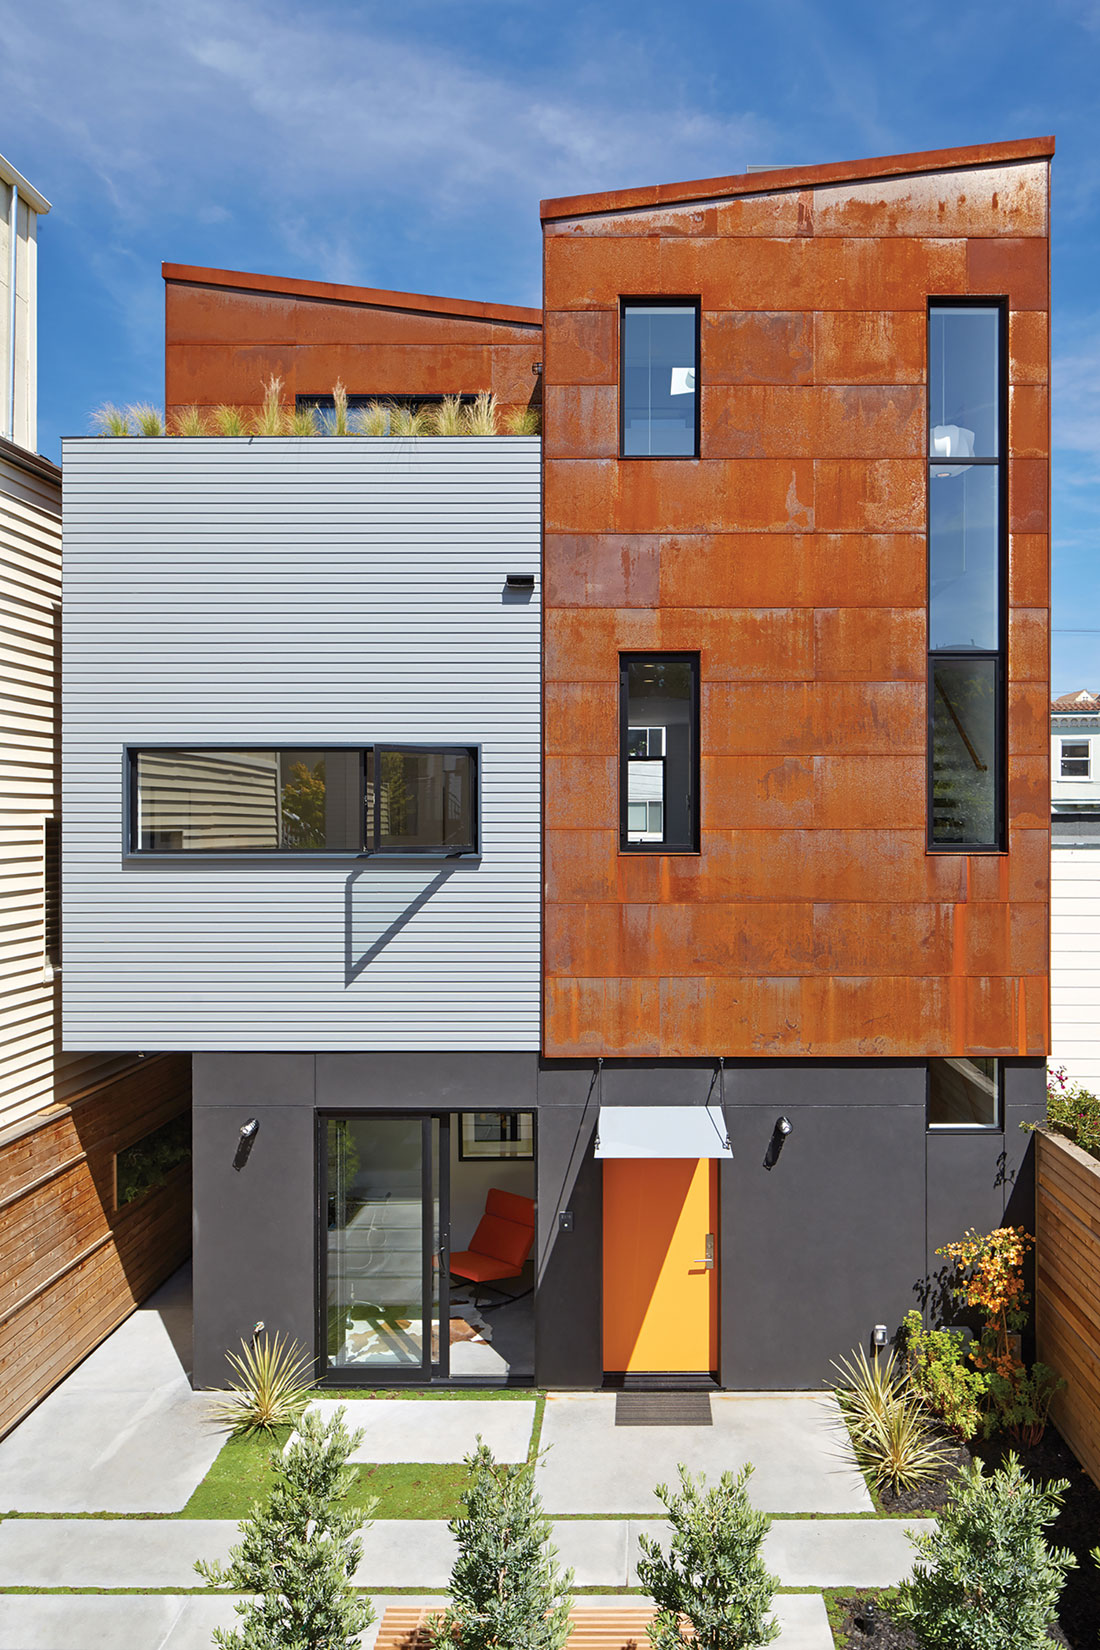 Steelhouse 1 + 2 by Zack | de Vito Architecture (2)